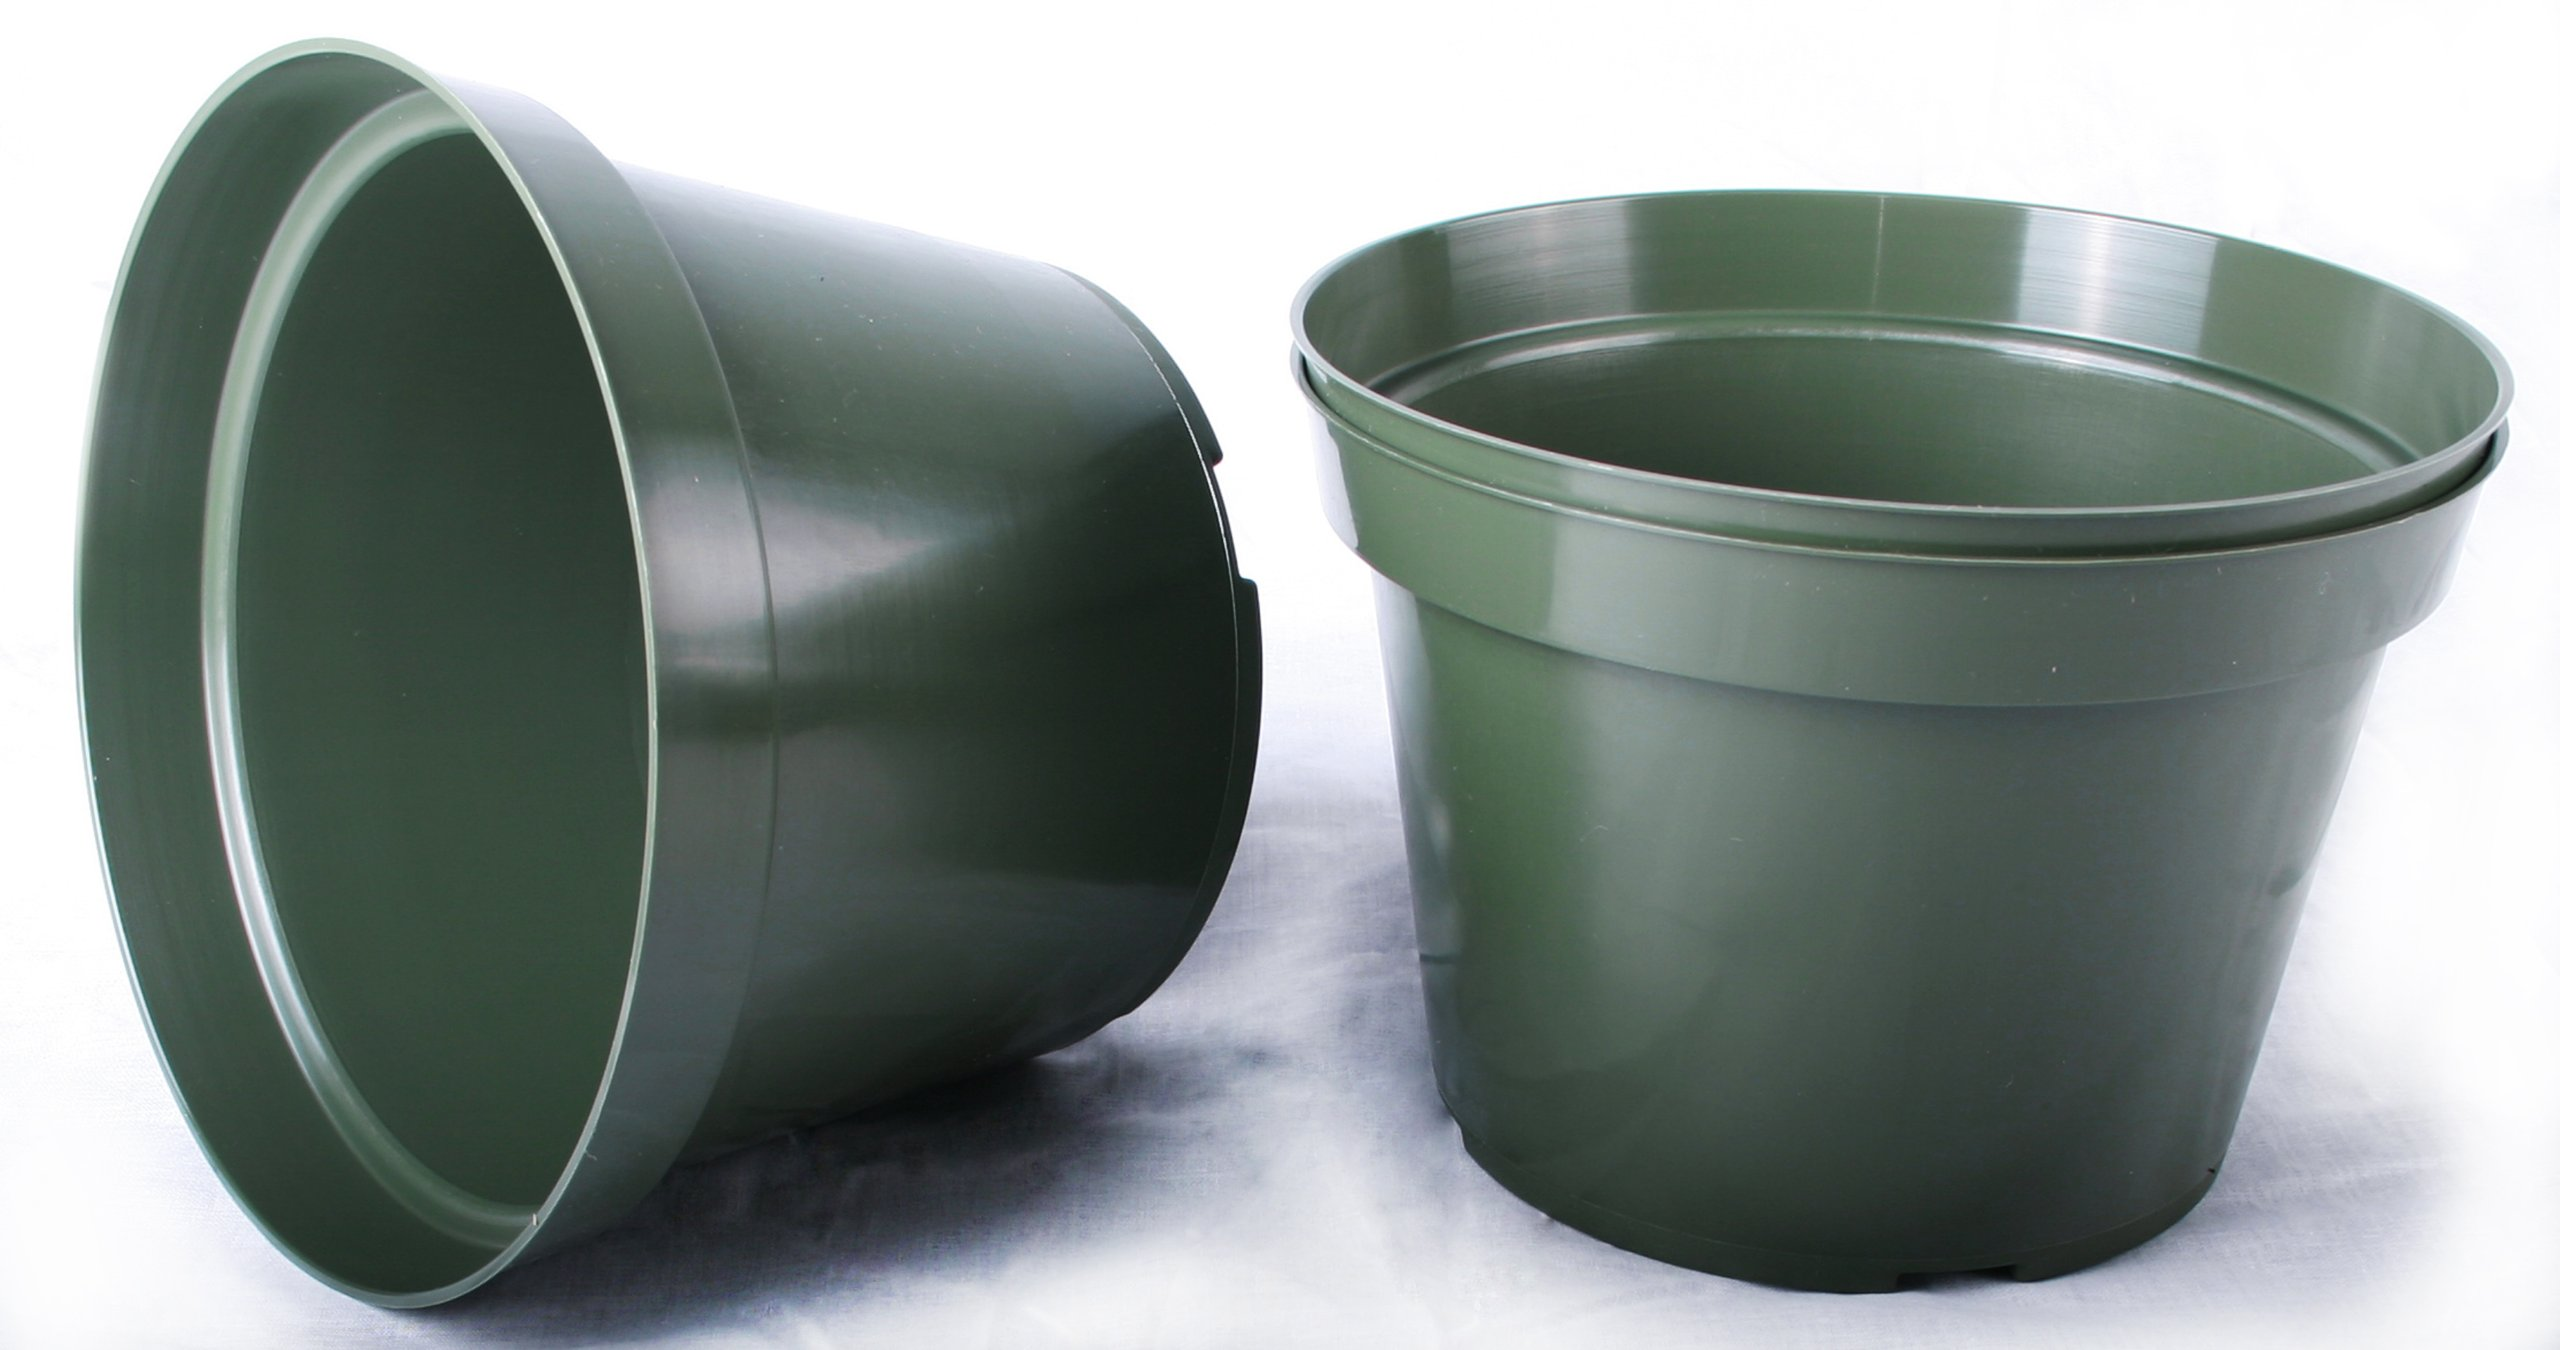 12 NEW 10 Inch Standard Plastic Nursery Pots ~ Pots ARE 10 Inch Round At the Top and 7.3 Inch Deep. by Azalea (Image #1)